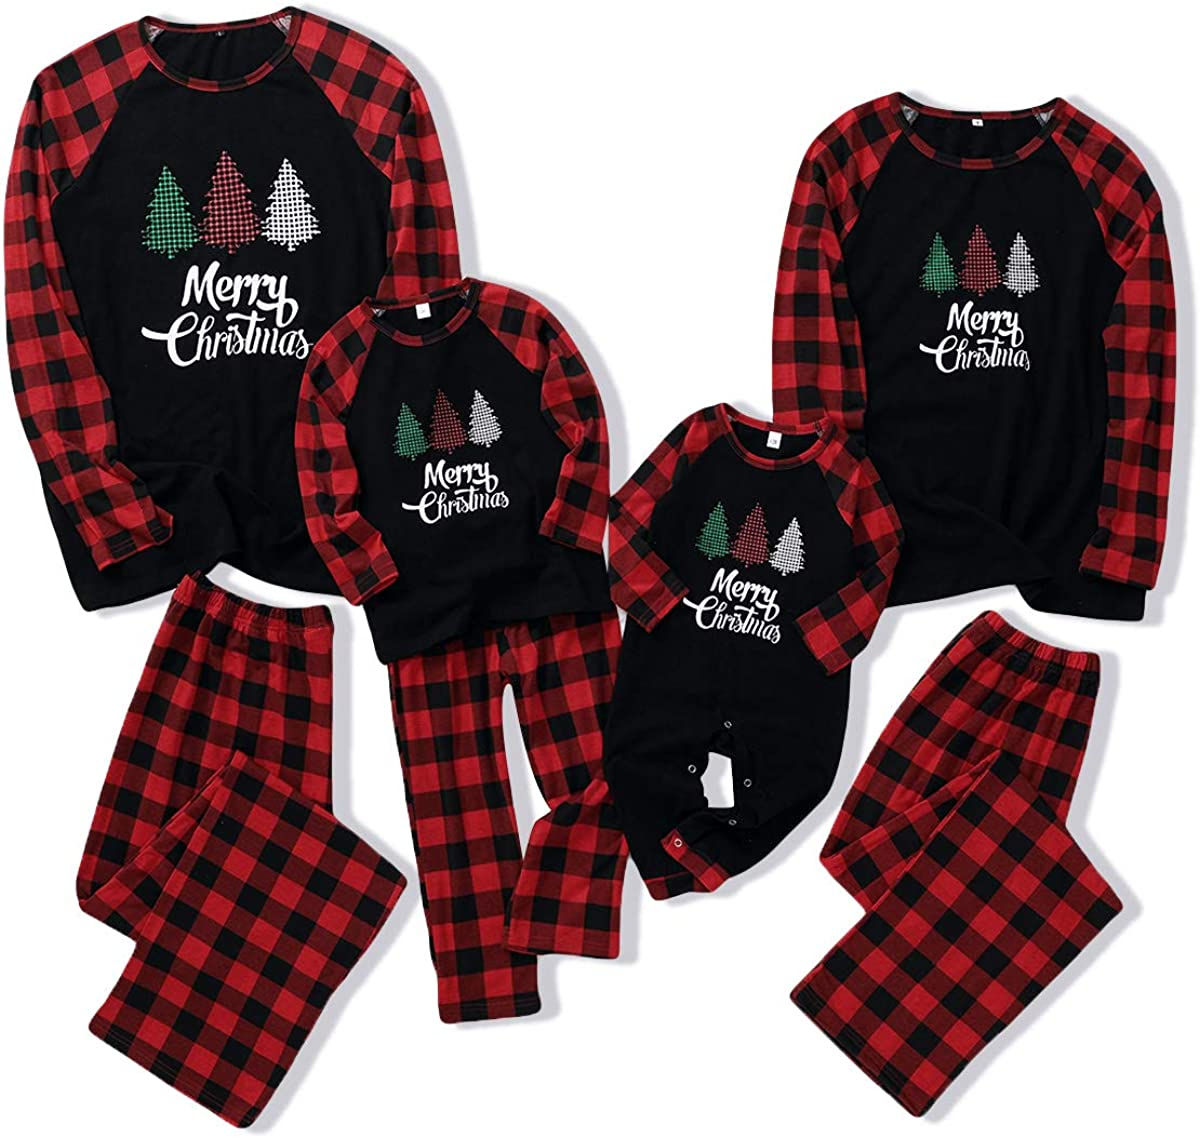 Merry Christmas Pajamas Family Christmas Matching Clothes Outfits Set for  Dad Mom Baby Kids